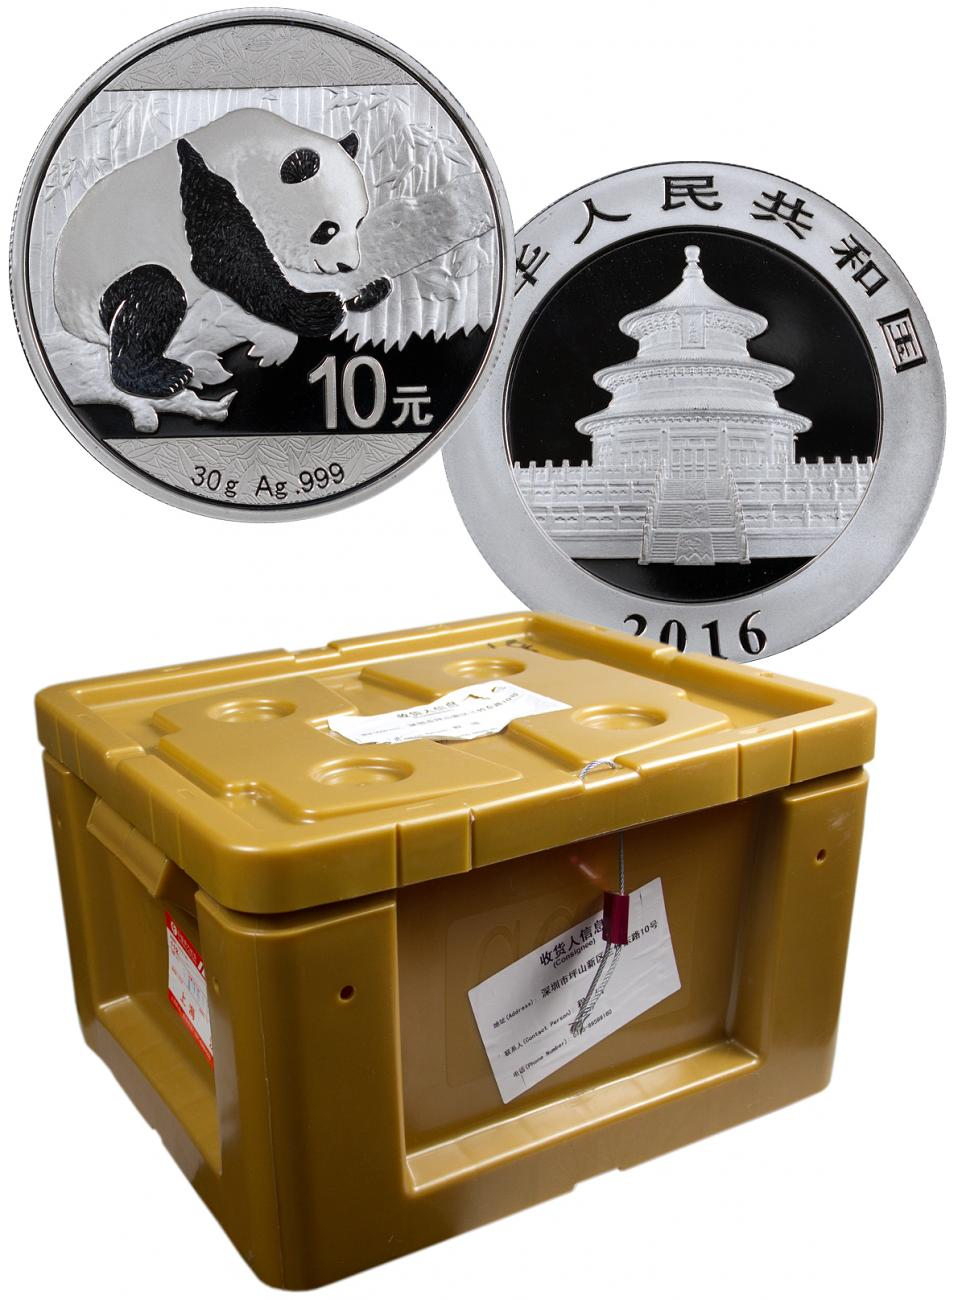 Monster Box of 450 - 2016 China 30 g Silver Panda ¥10 Coins GEM BU Mint Sealed